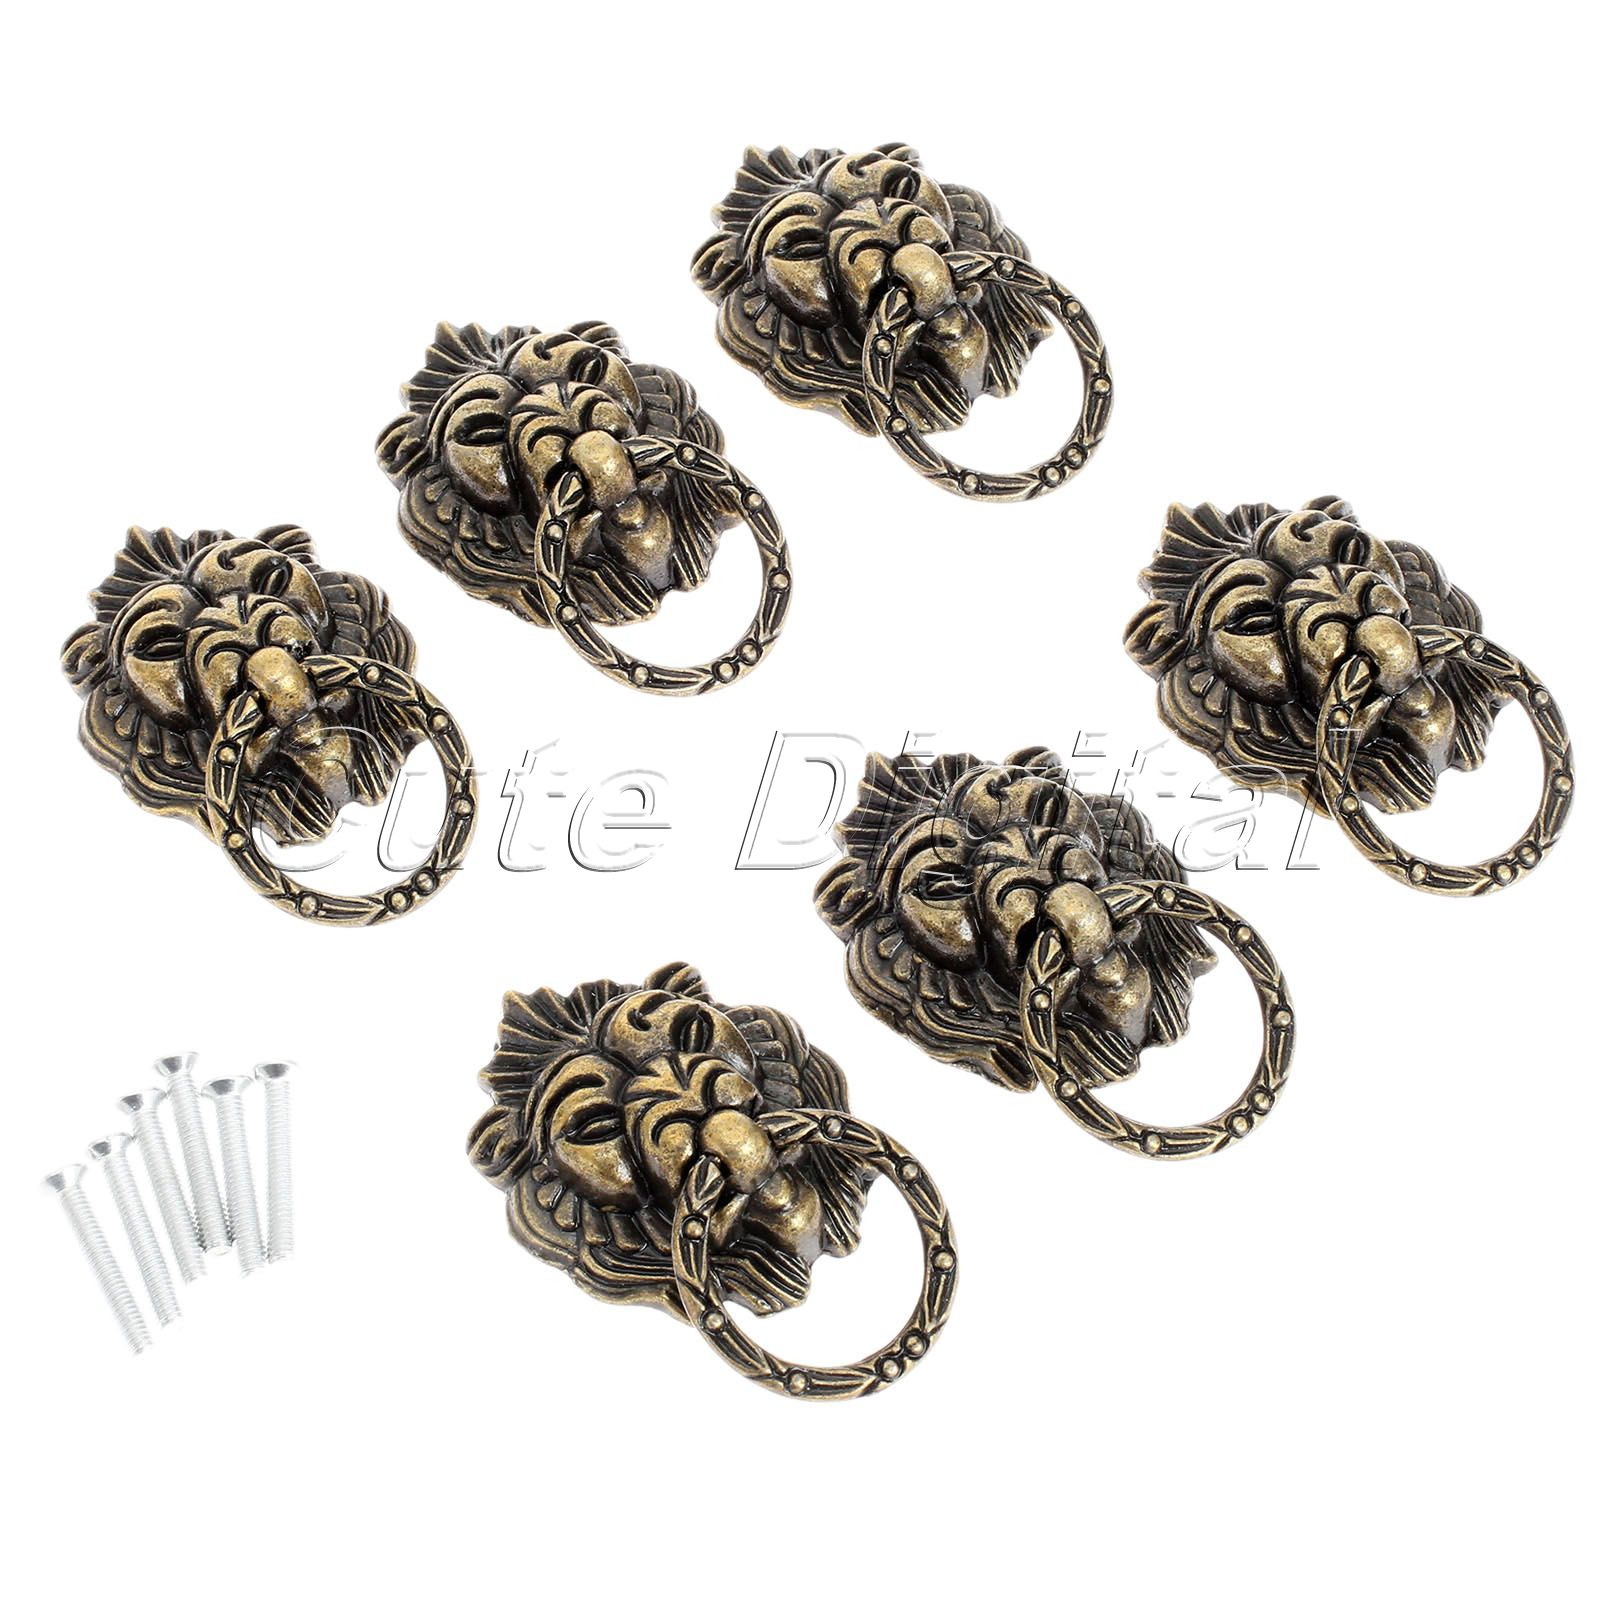 6pcs Bronze Chinese Door Handle Wardrobe Handle Kitchen Knobs Cabinet Hardware Vintage Handles Decorative Knob Asas